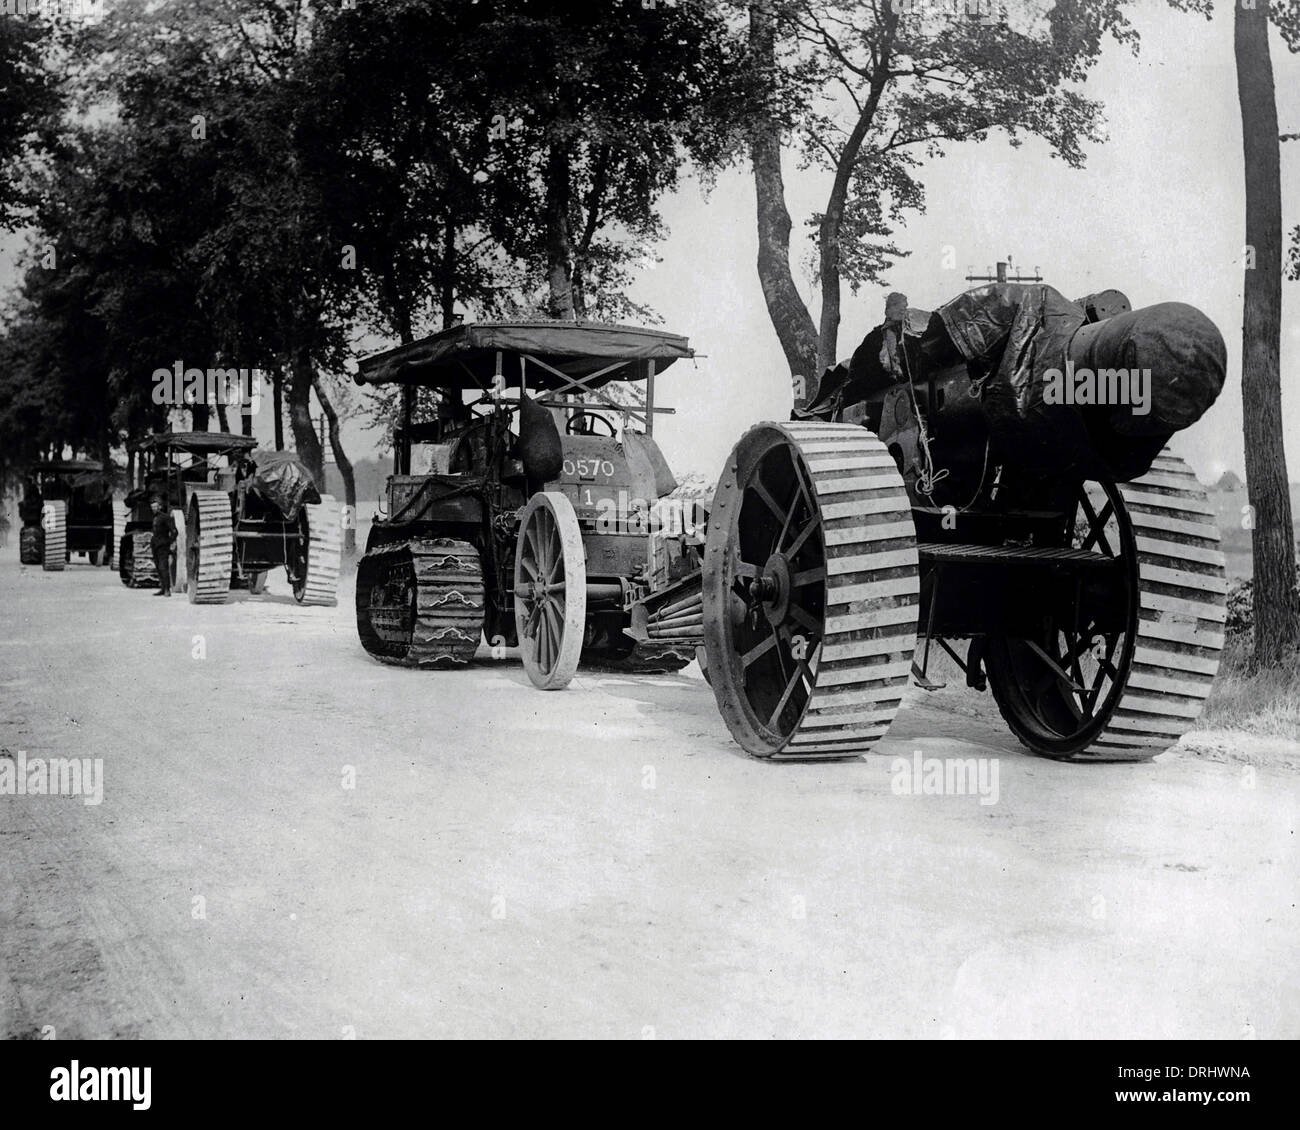 Big guns on their way to the Front, WW1 - Stock Image